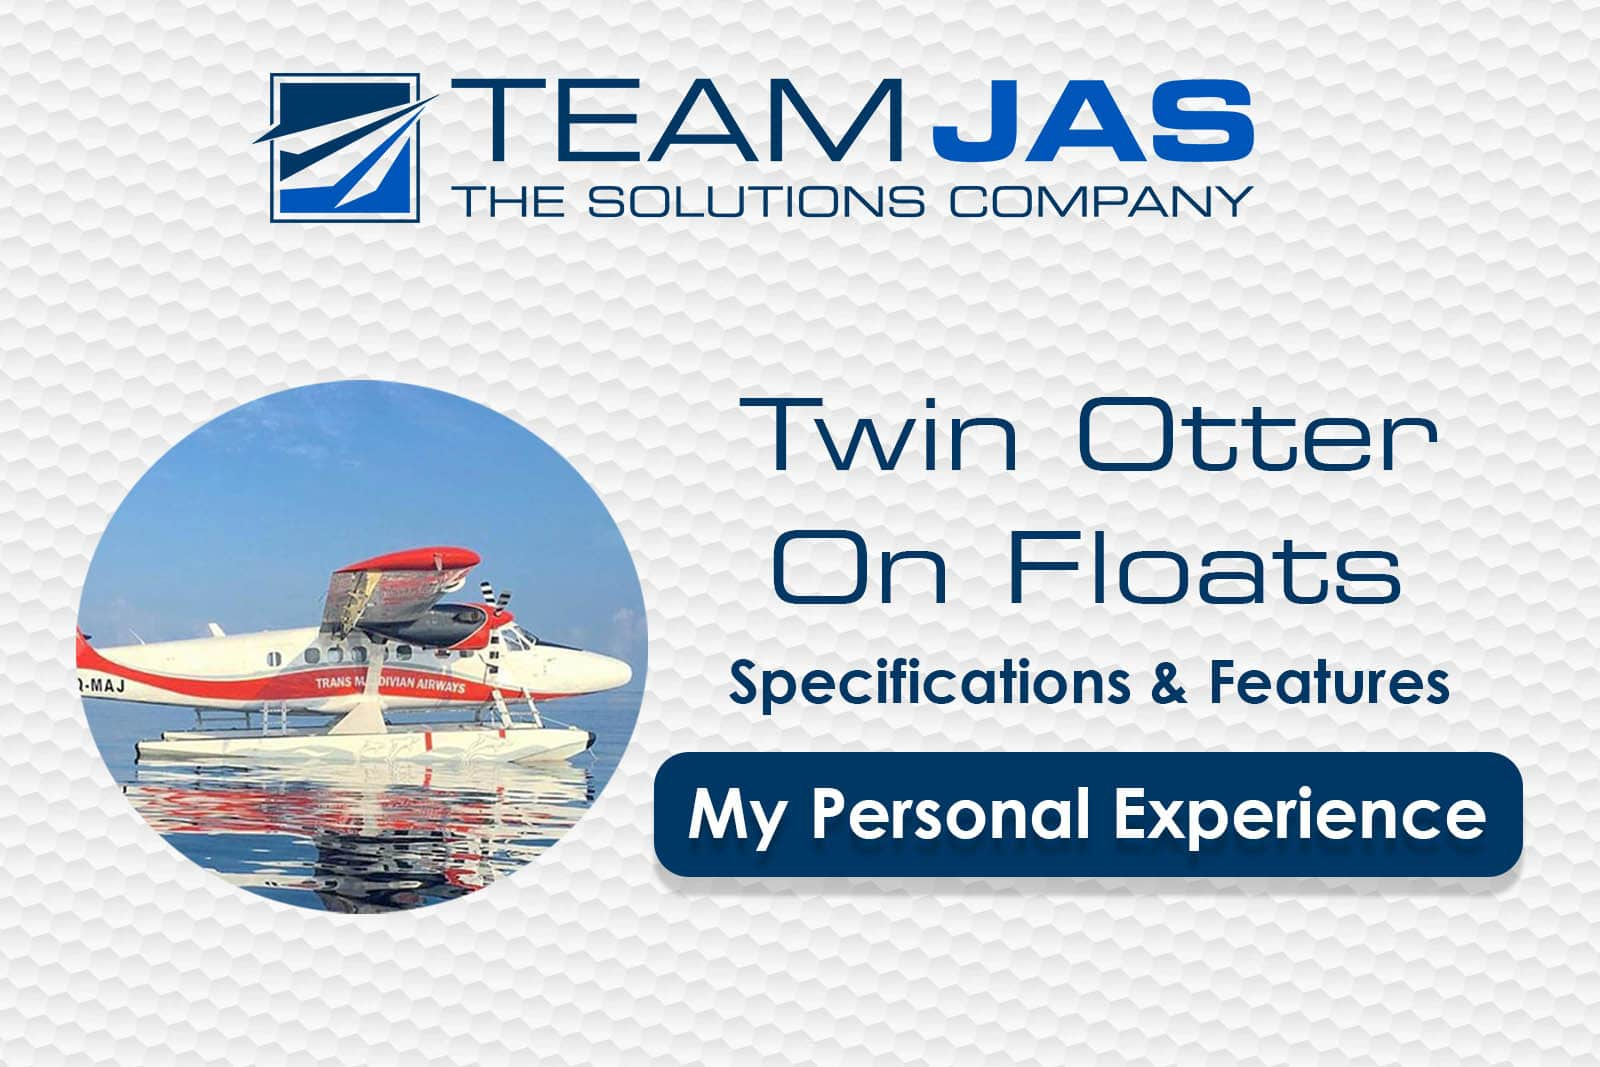 Twin Otter on Floats: Specifications, Features and my